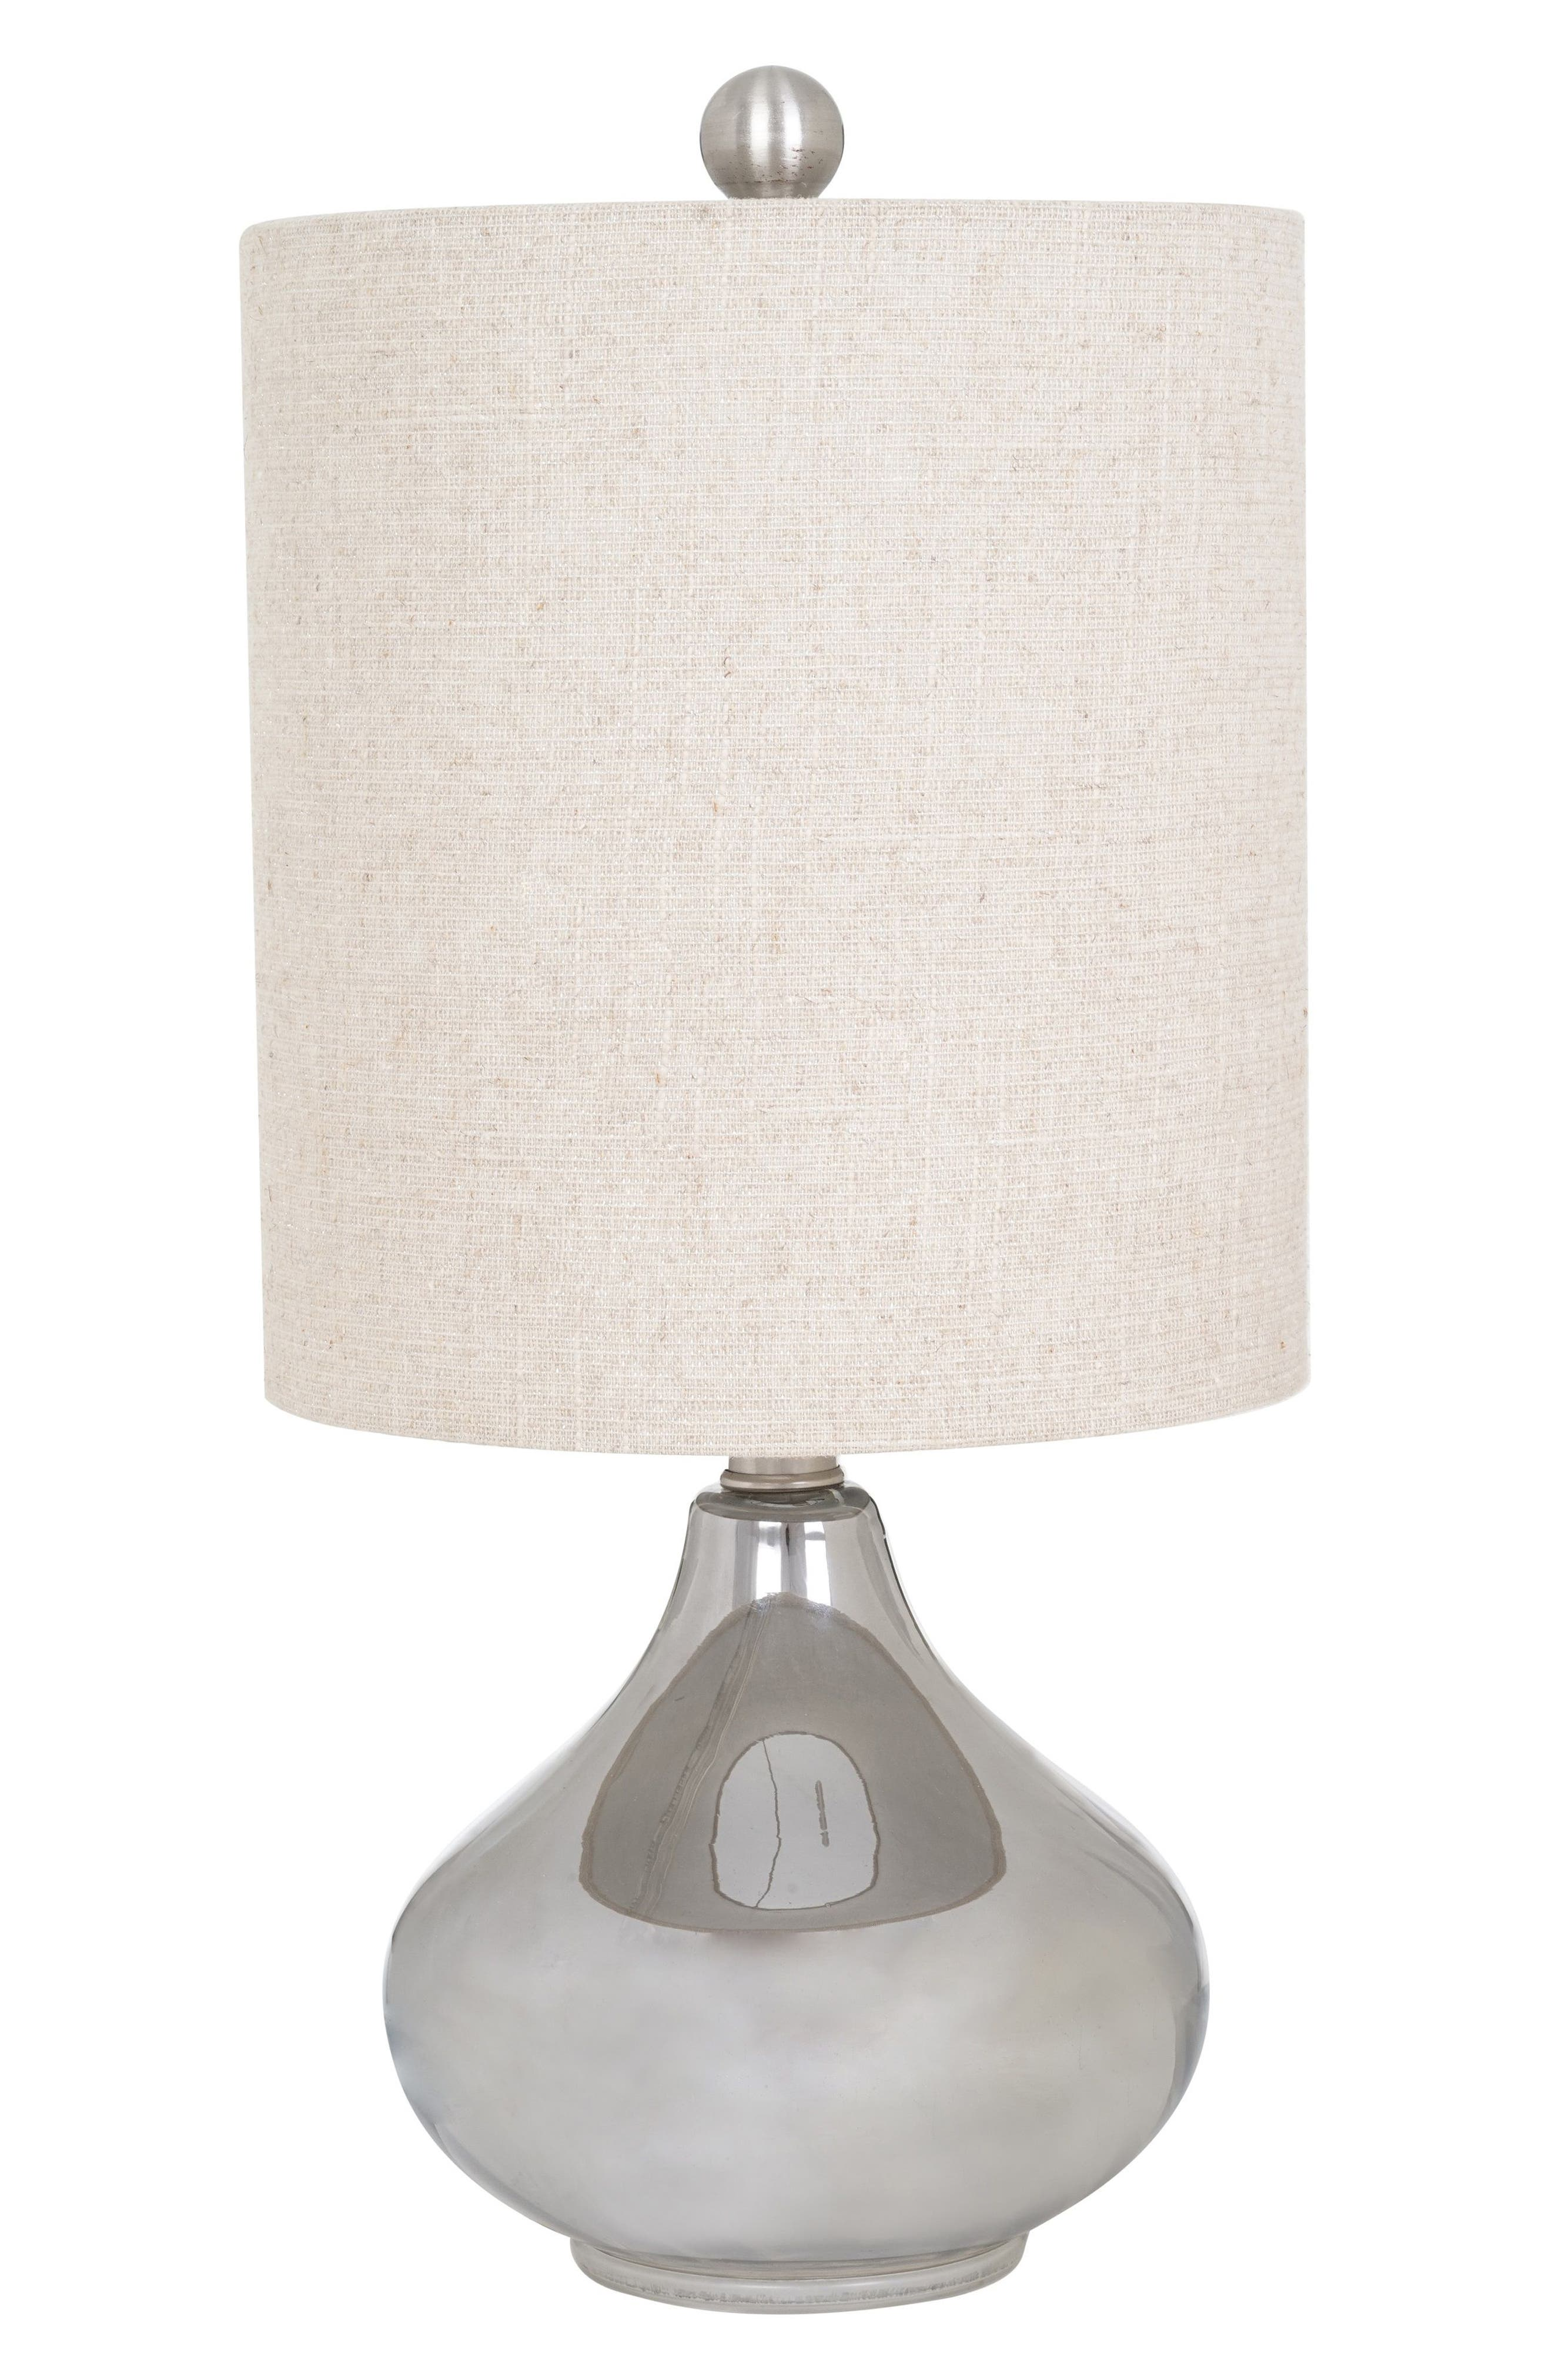 Chrome Table Lamp,                         Main,                         color, Silver